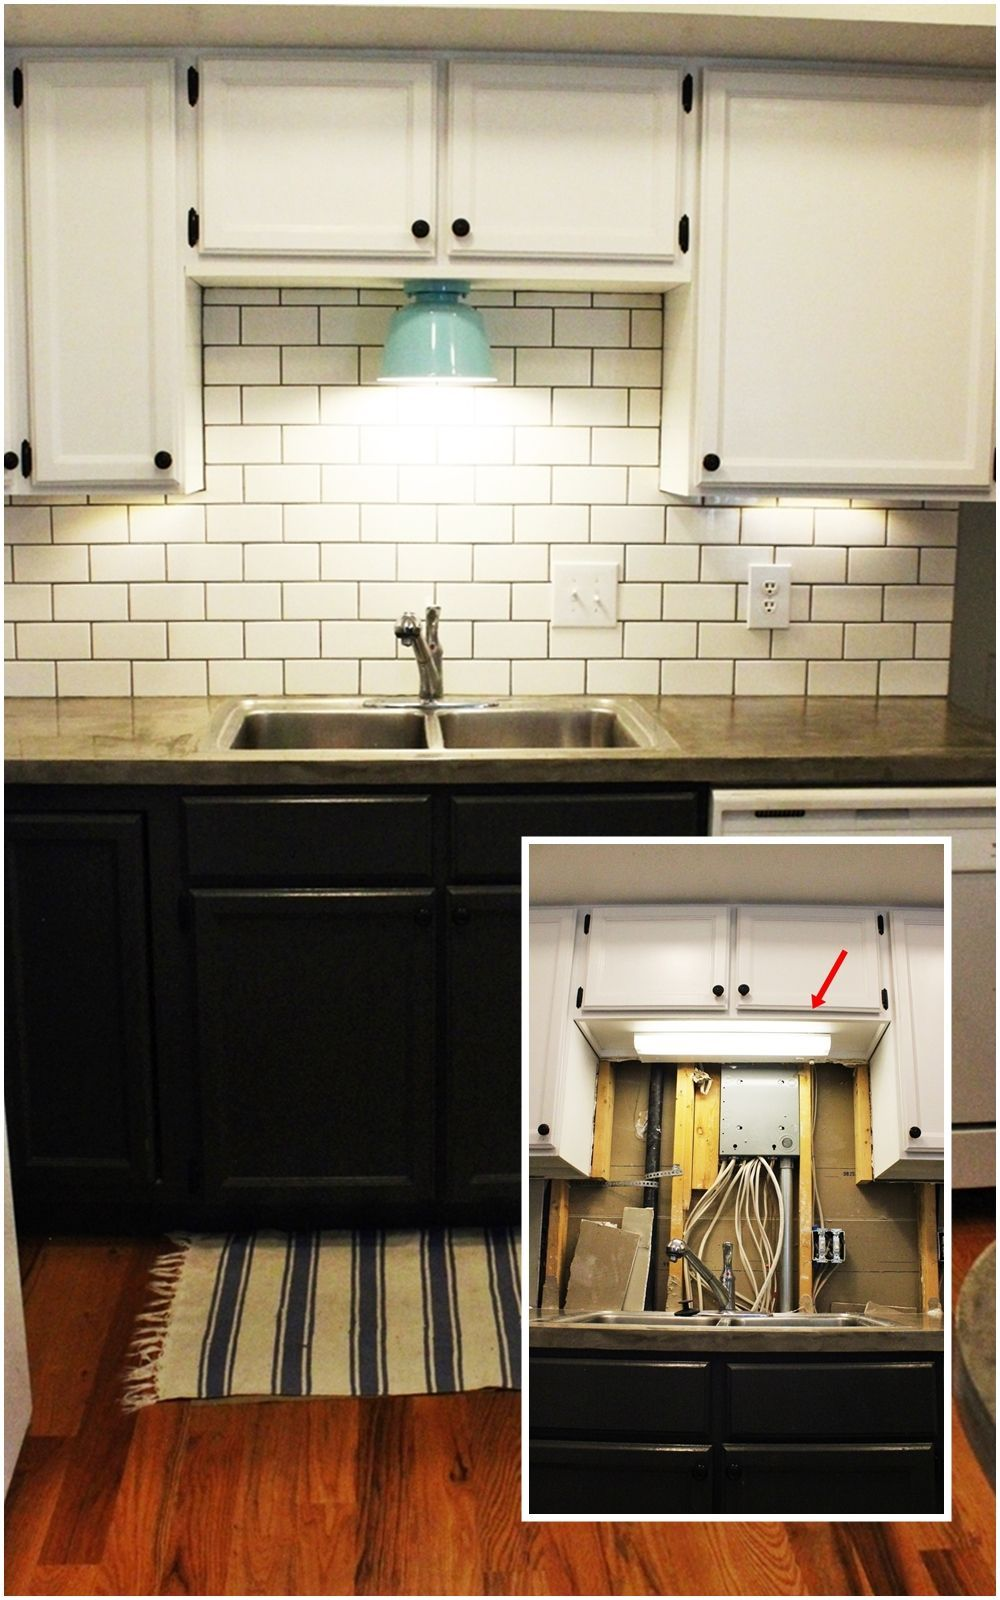 Diy kitchen lighting upgrade led under cabinet lights above the diy kitchen lighting upgrade led under cabinet lights above the sink light aloadofball Gallery